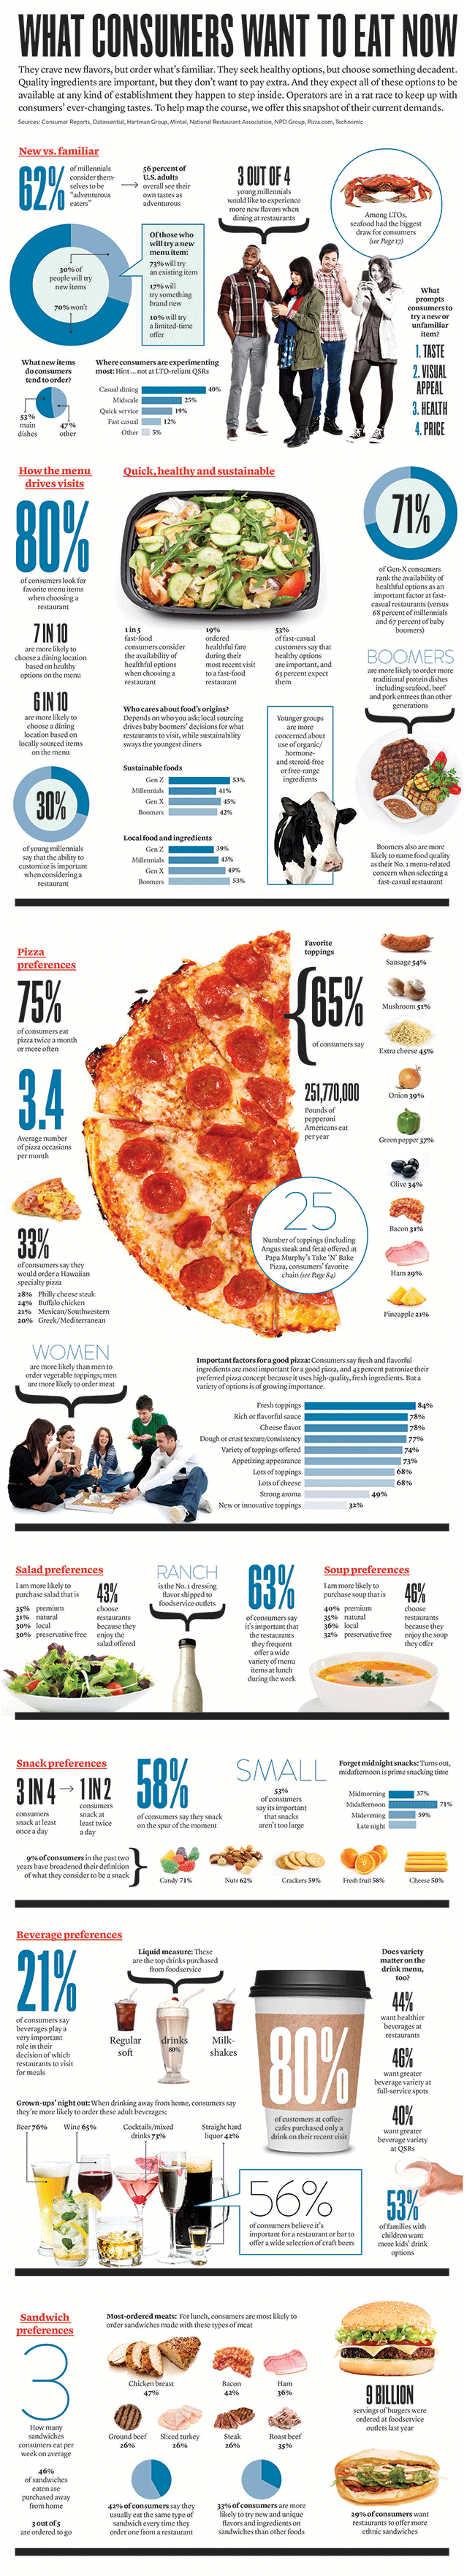 what people want to eat in pizza